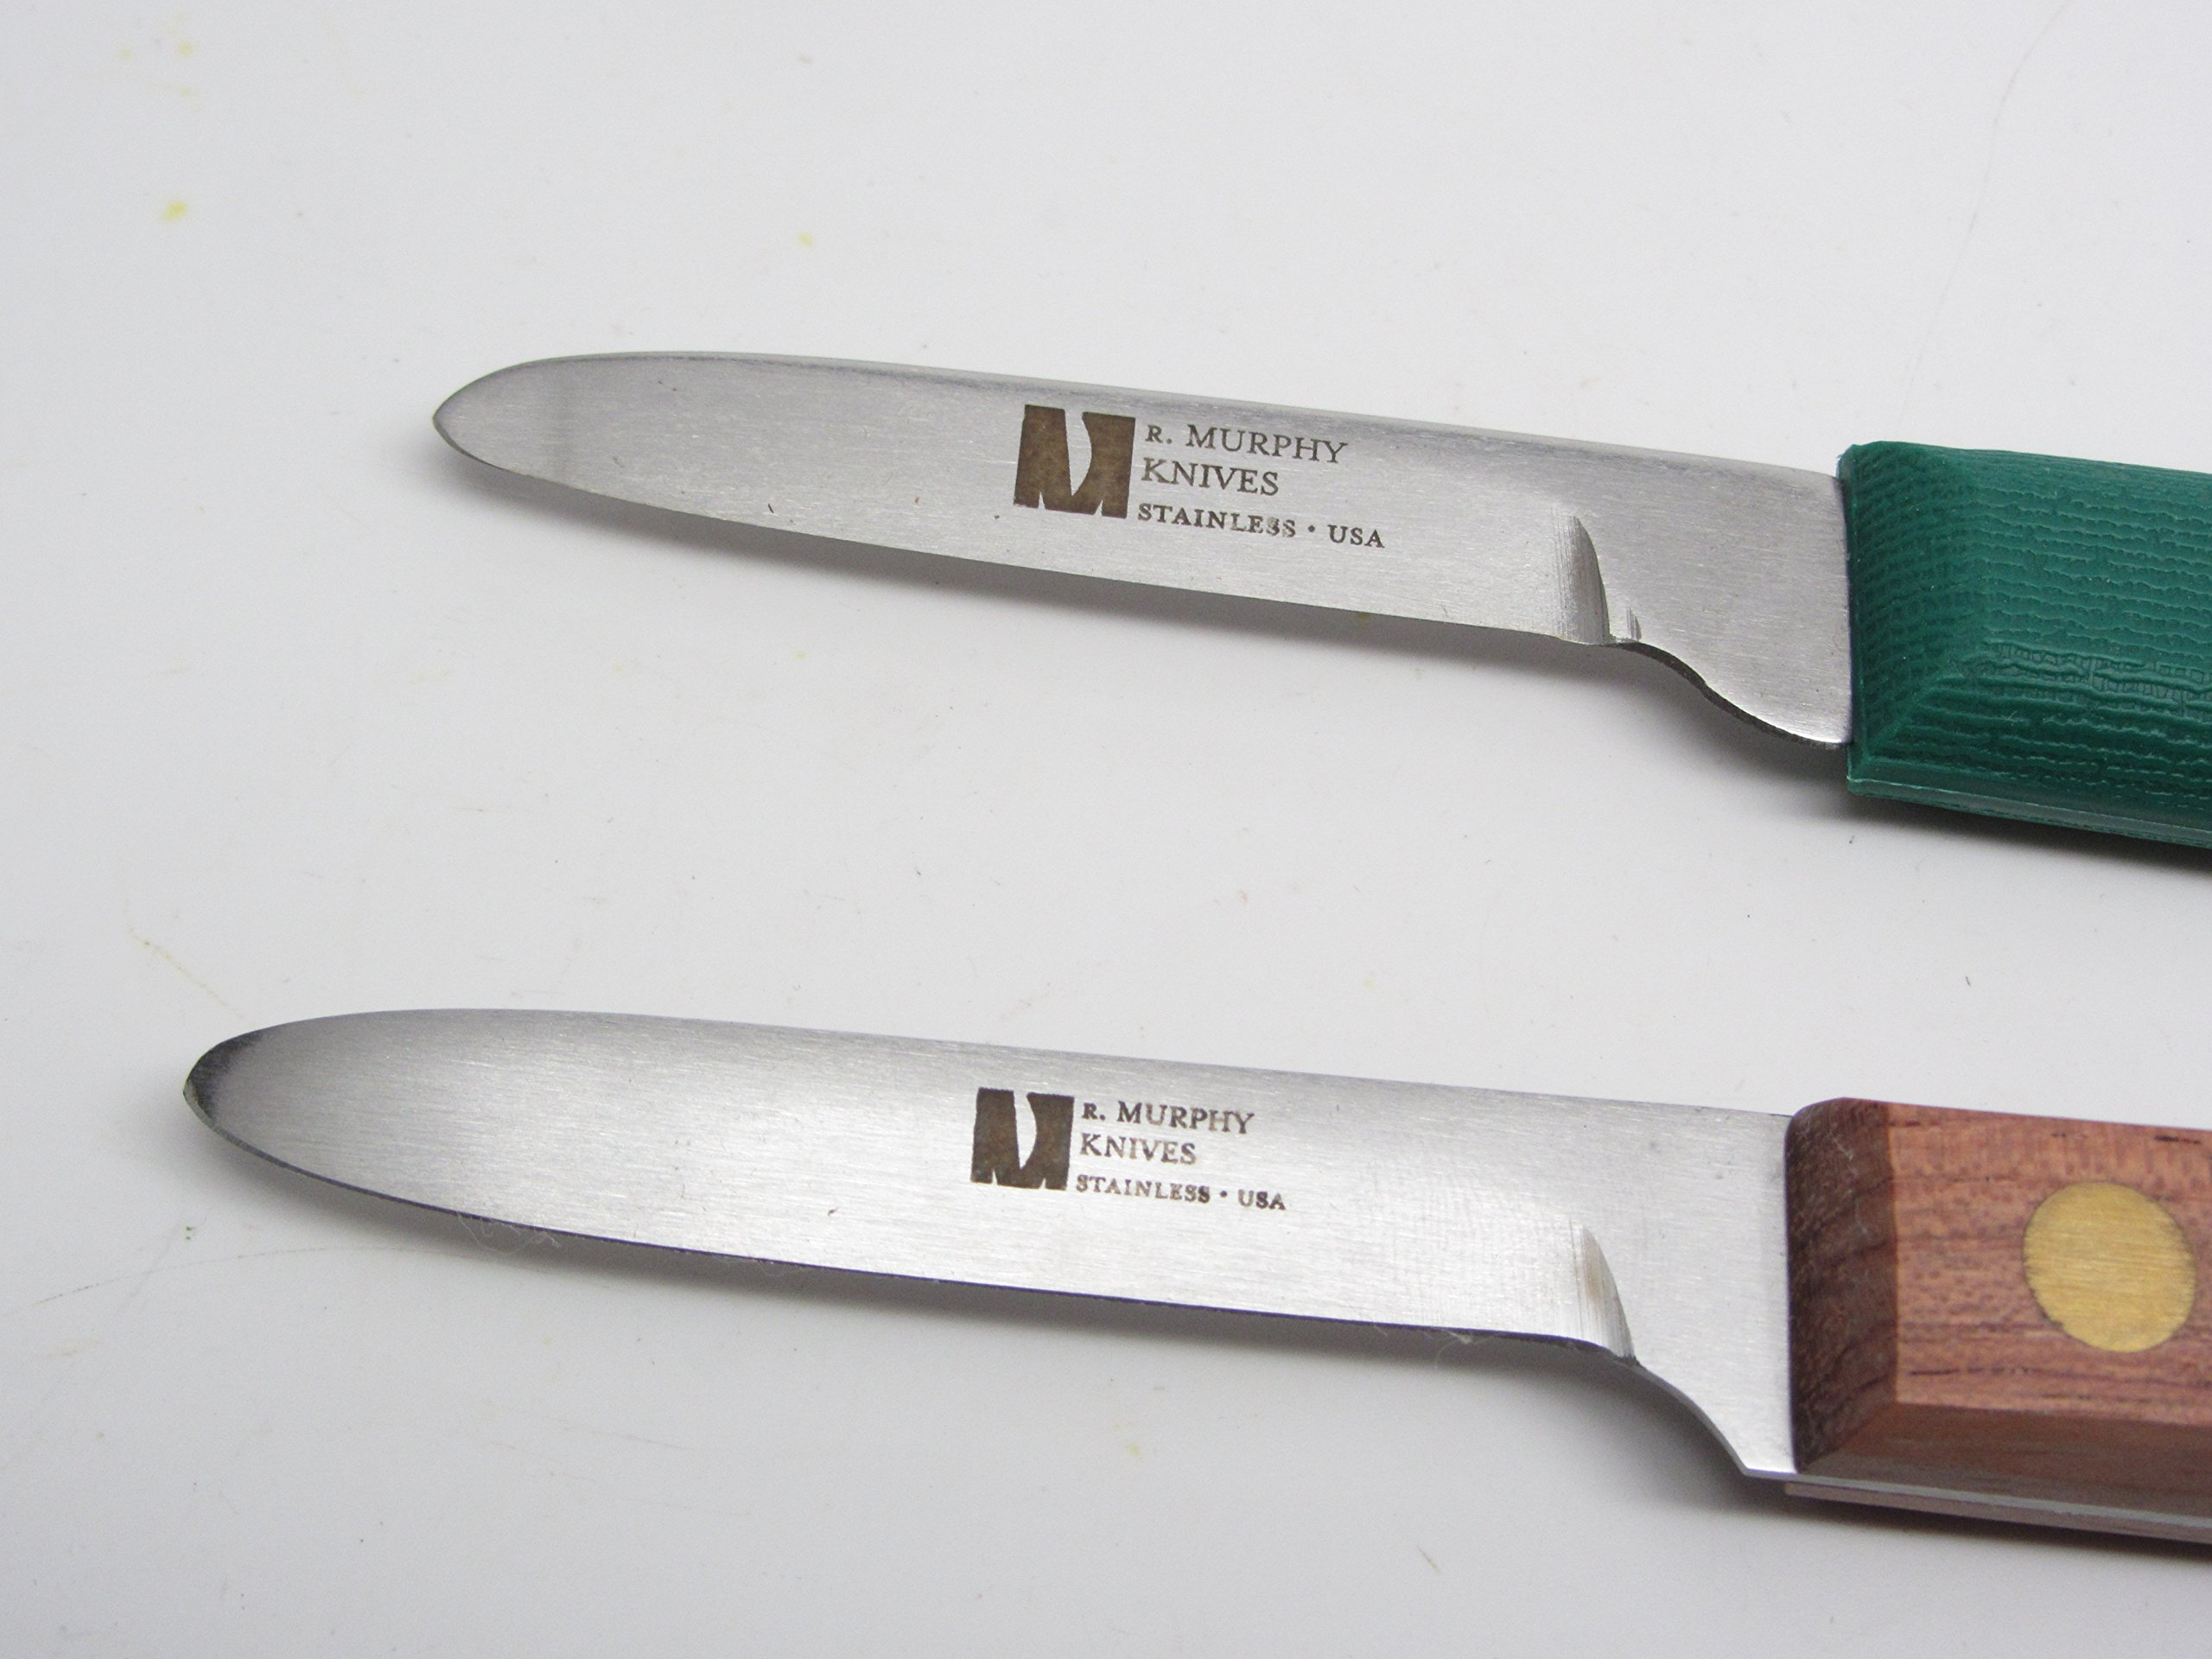 2 R Murphy Shellfish Little Neck Clam Knife Seafood Tools Poly & Wood Handle